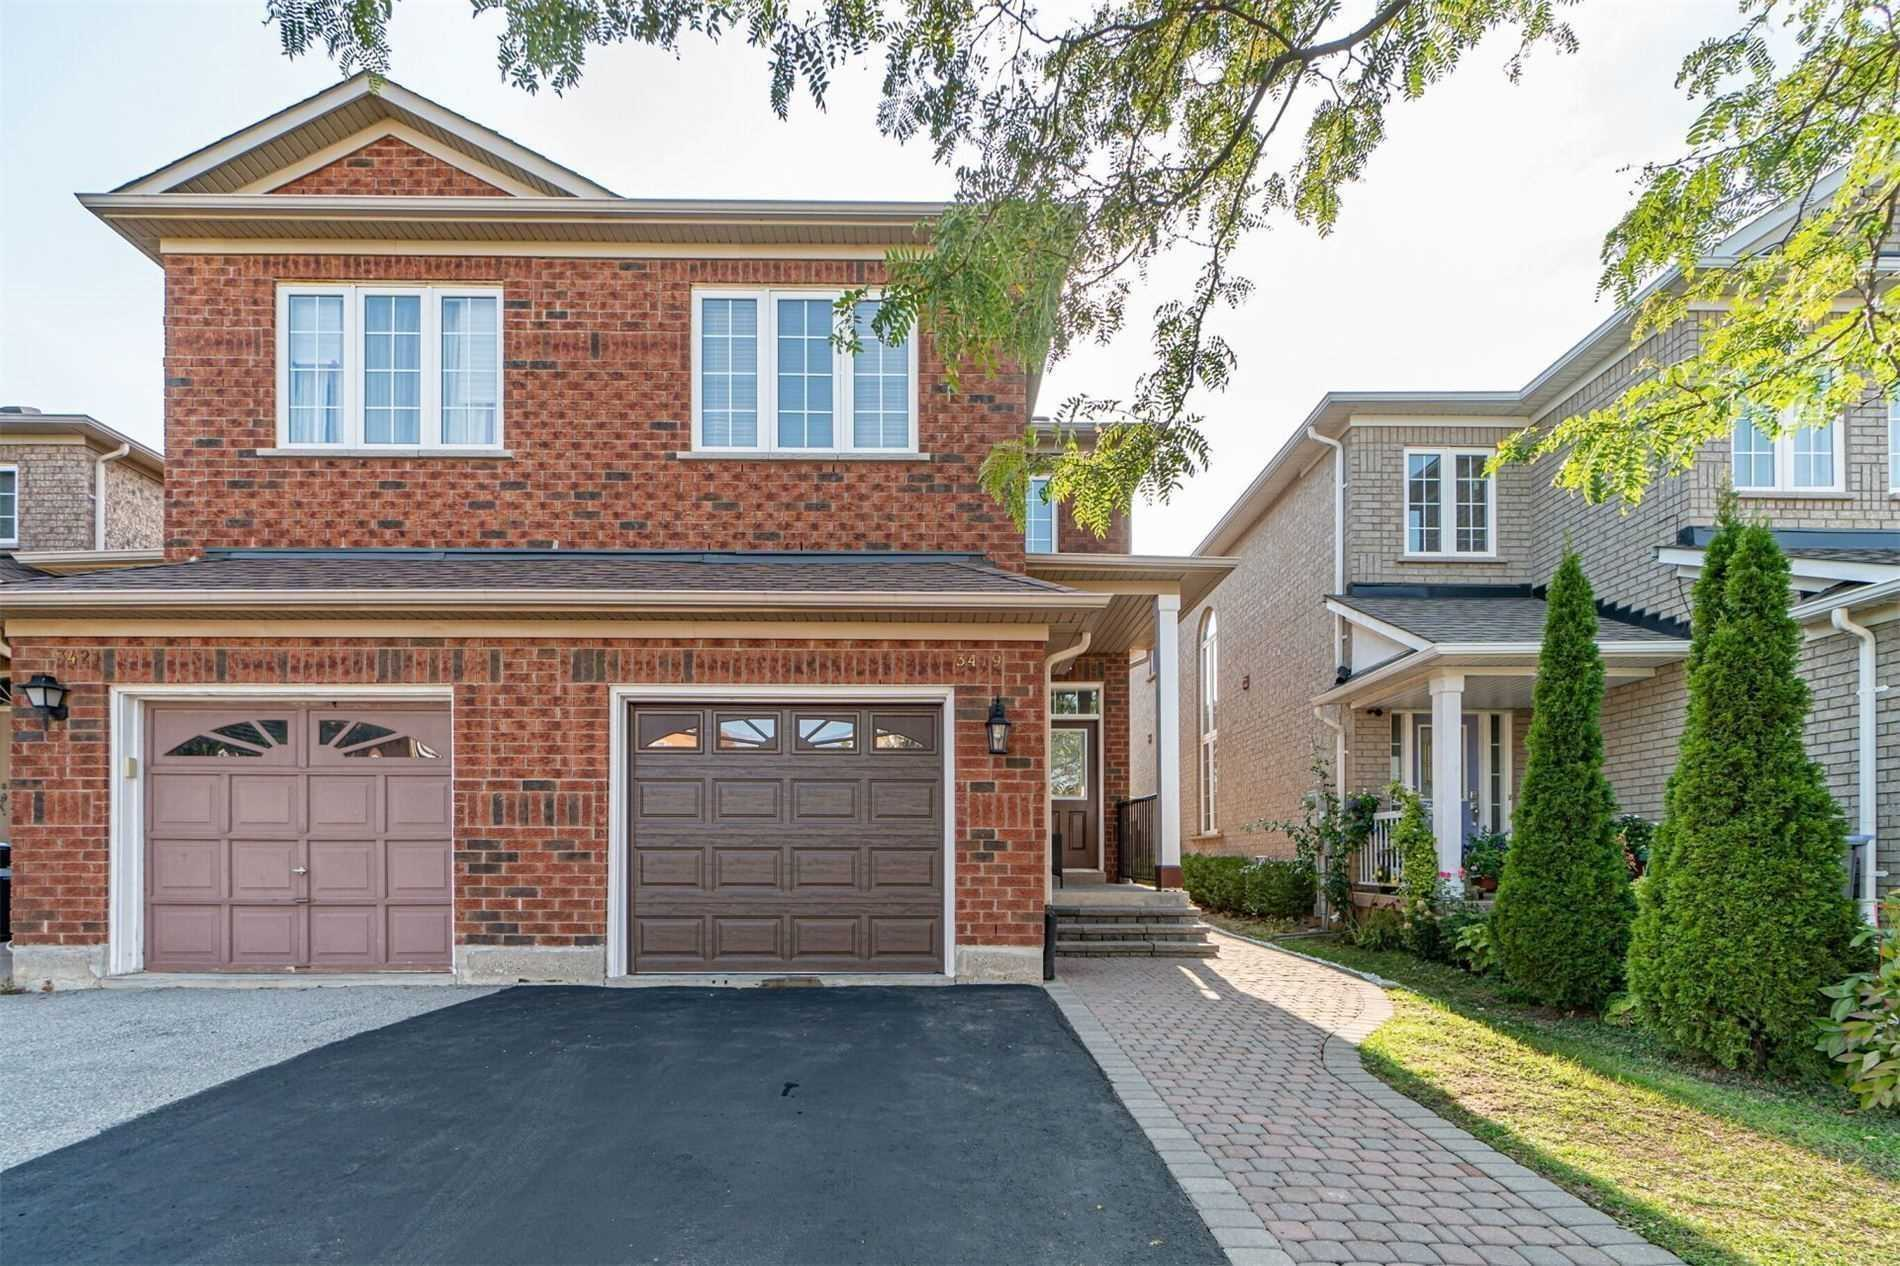 pictures of 3419 Fountain Park Ave, Mississauga L5M7E4